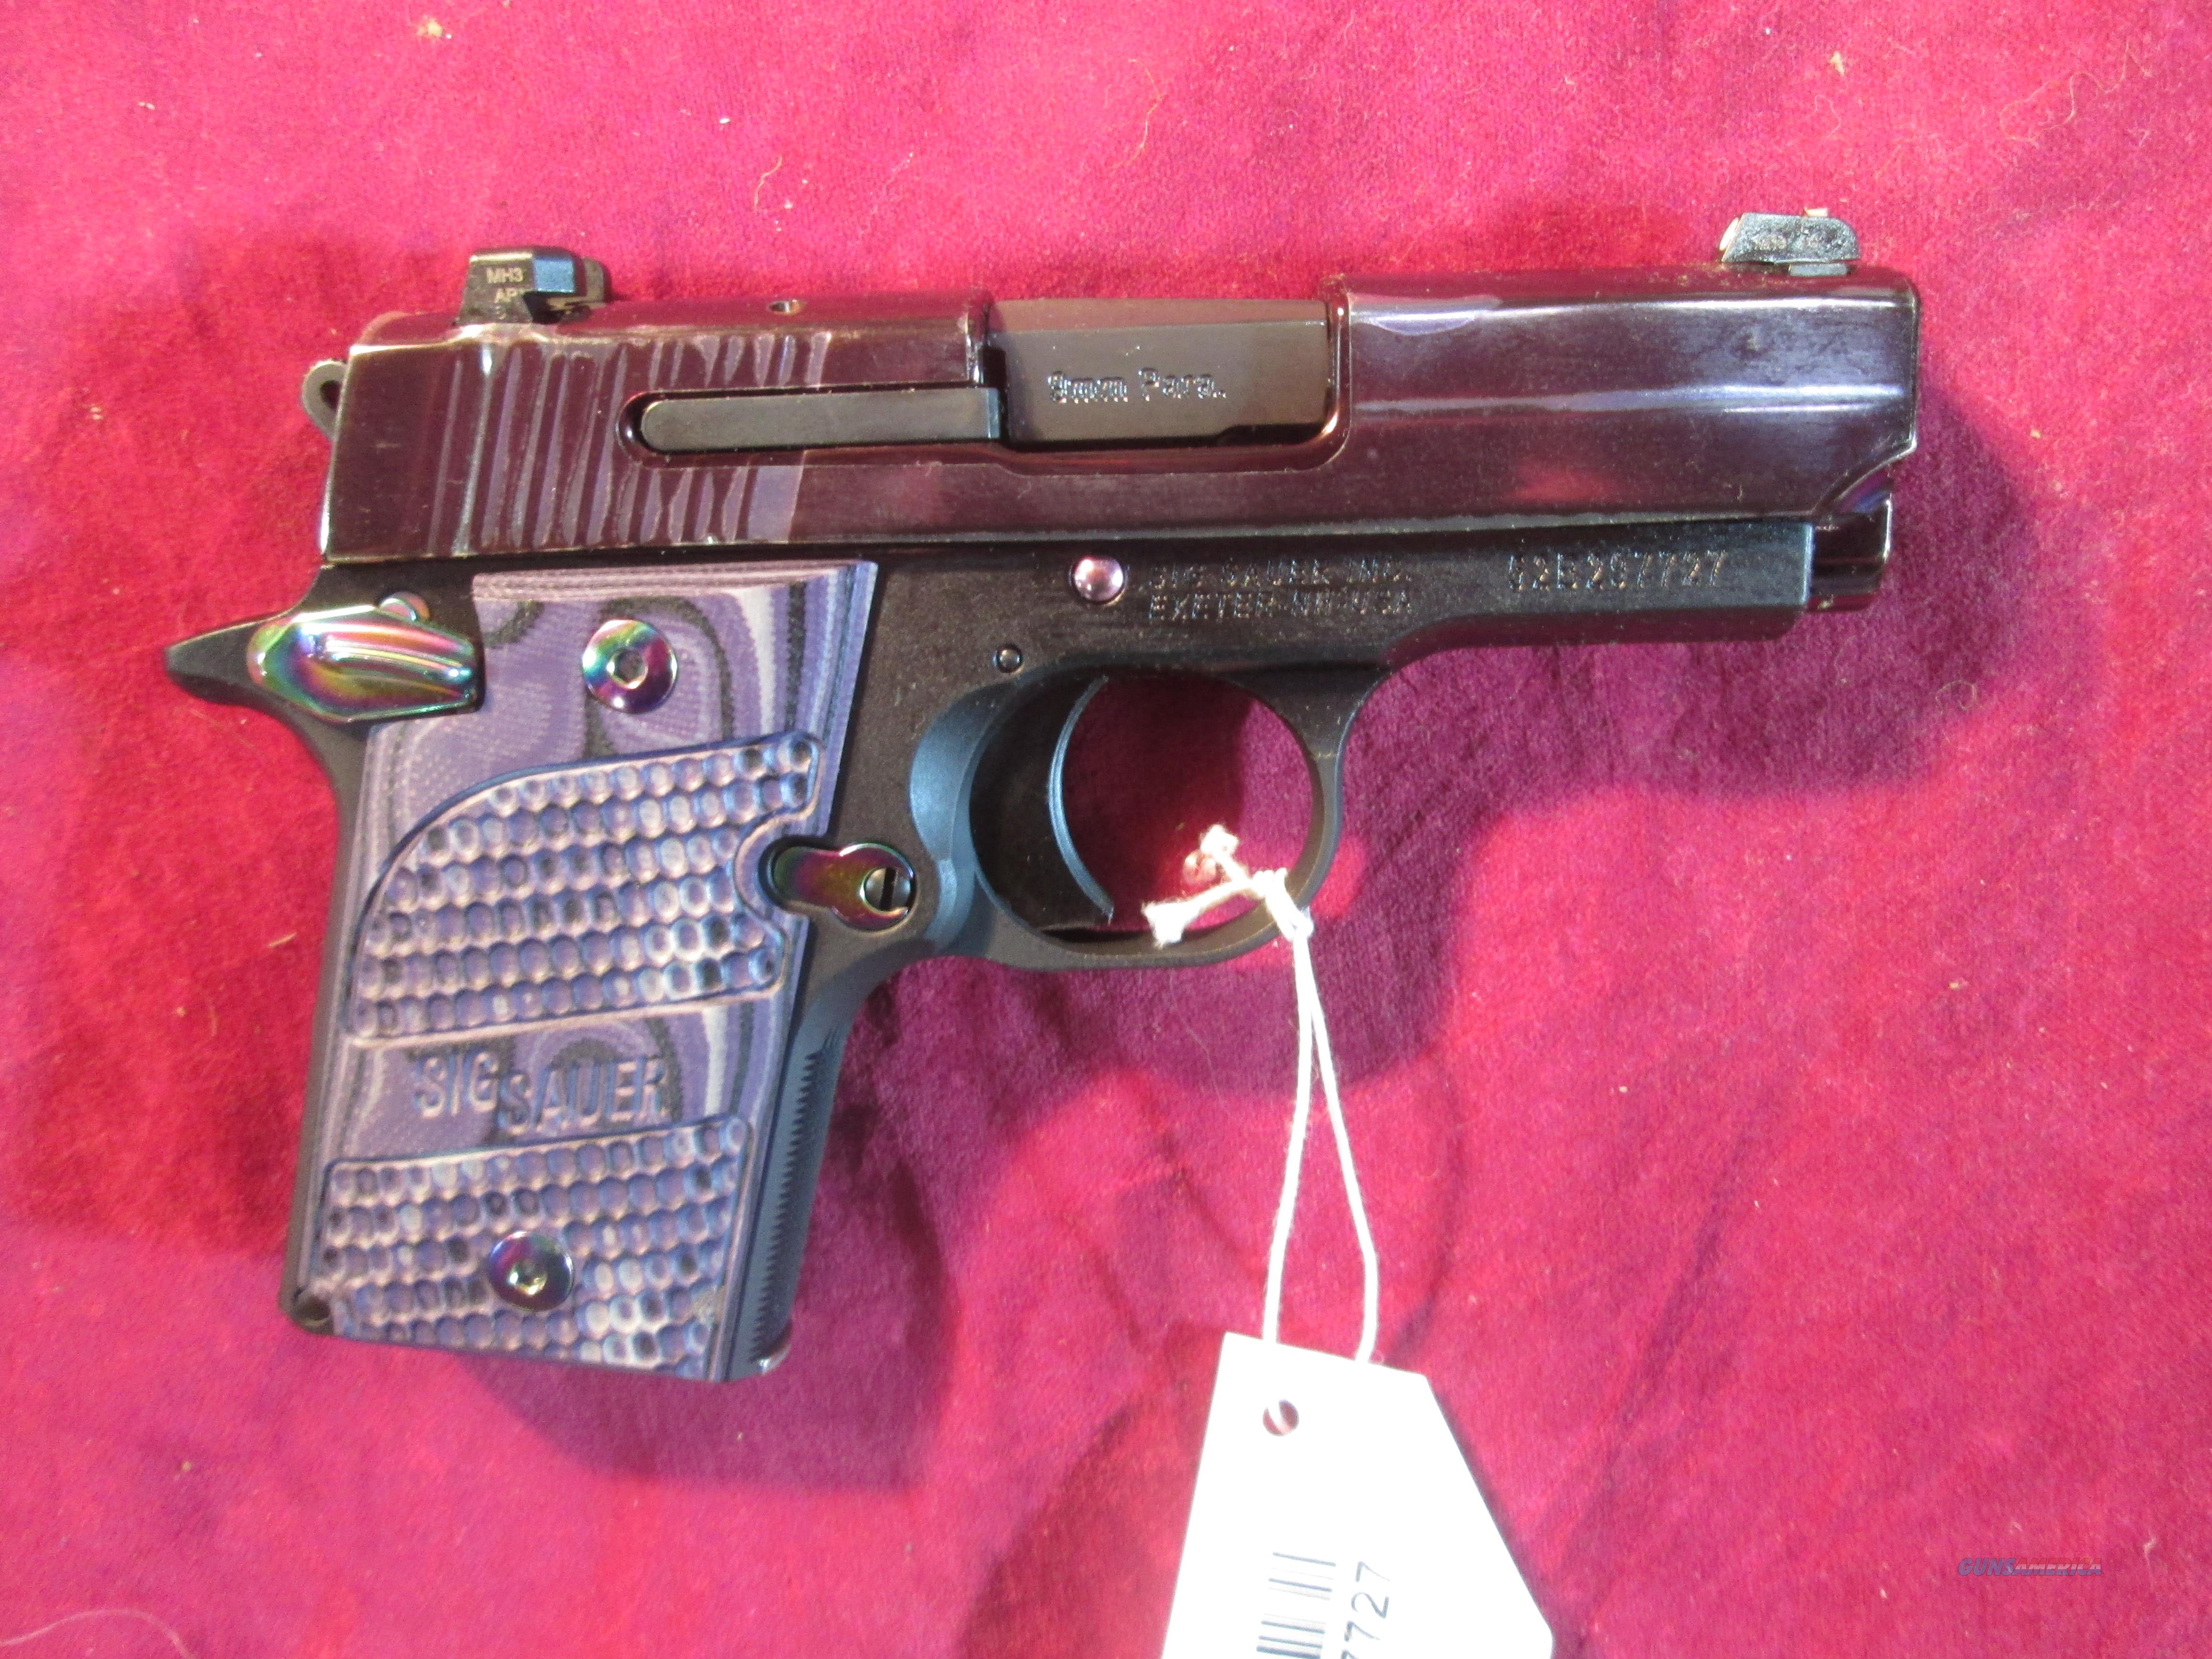 SIG SAUER 938 9MM PURPLE TITANIUM W/ NIGHT SIGHTS NEW (938-9-PSP-AMBI)  Guns > Pistols > Sig - Sauer/Sigarms Pistols > P938